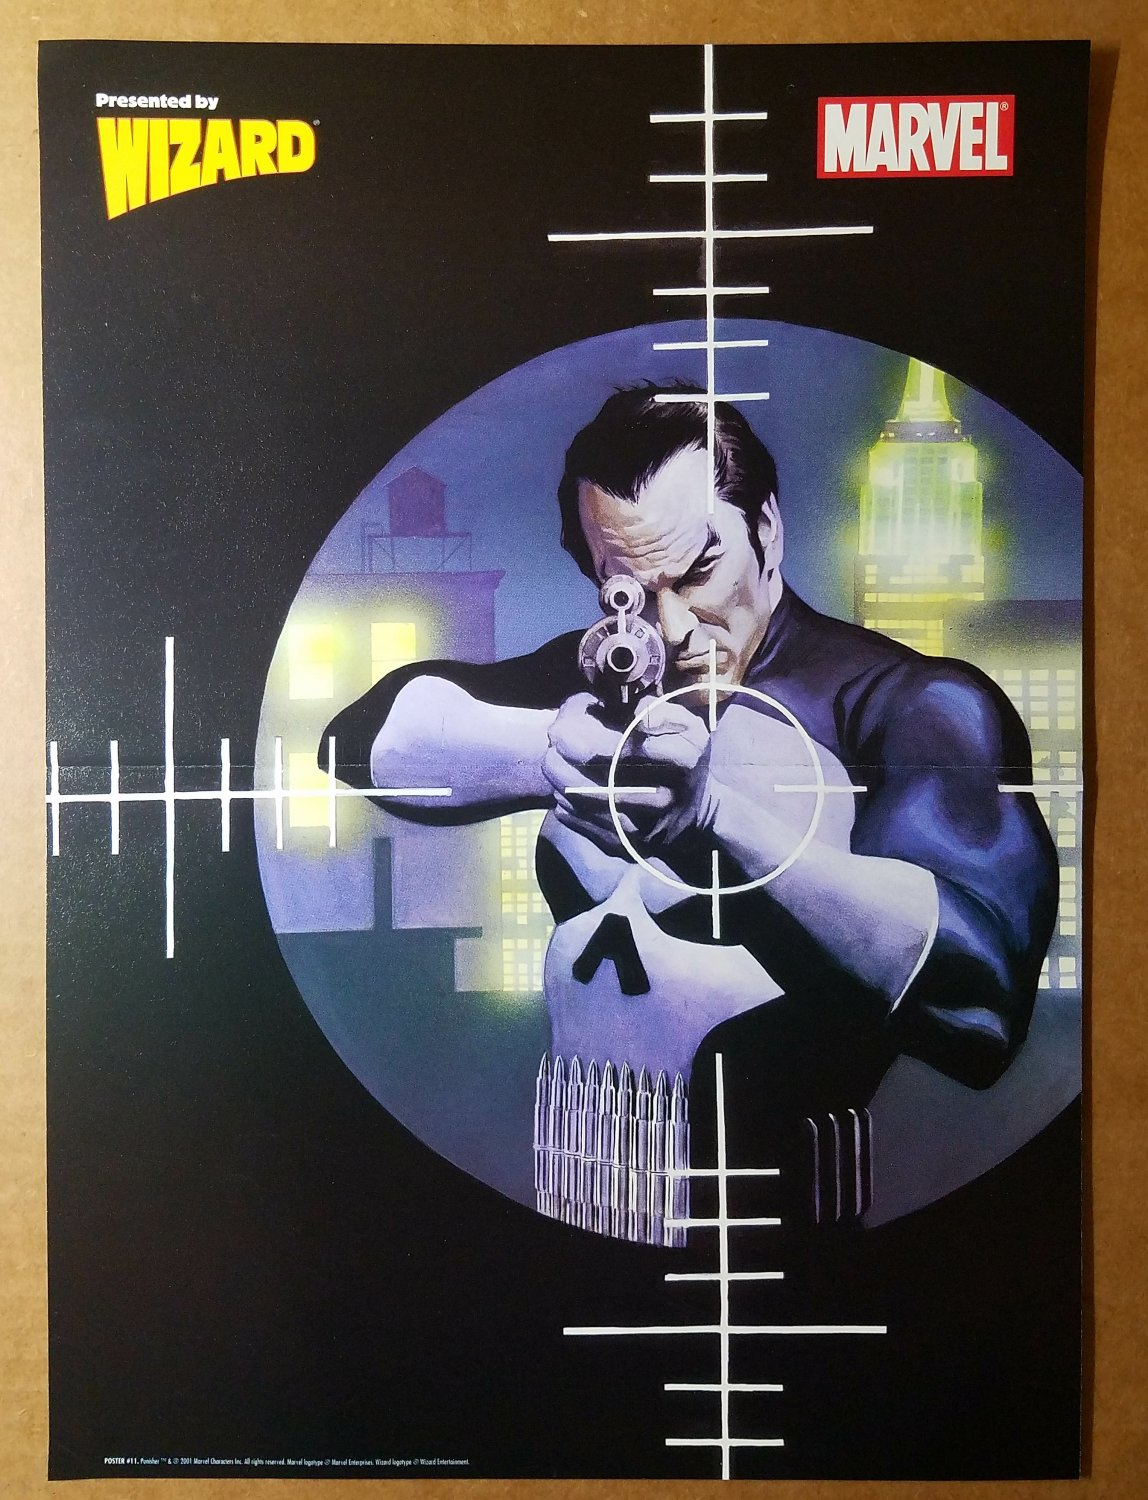 The Punisher Bullseye Marvel Comics Poster by Alex Ross